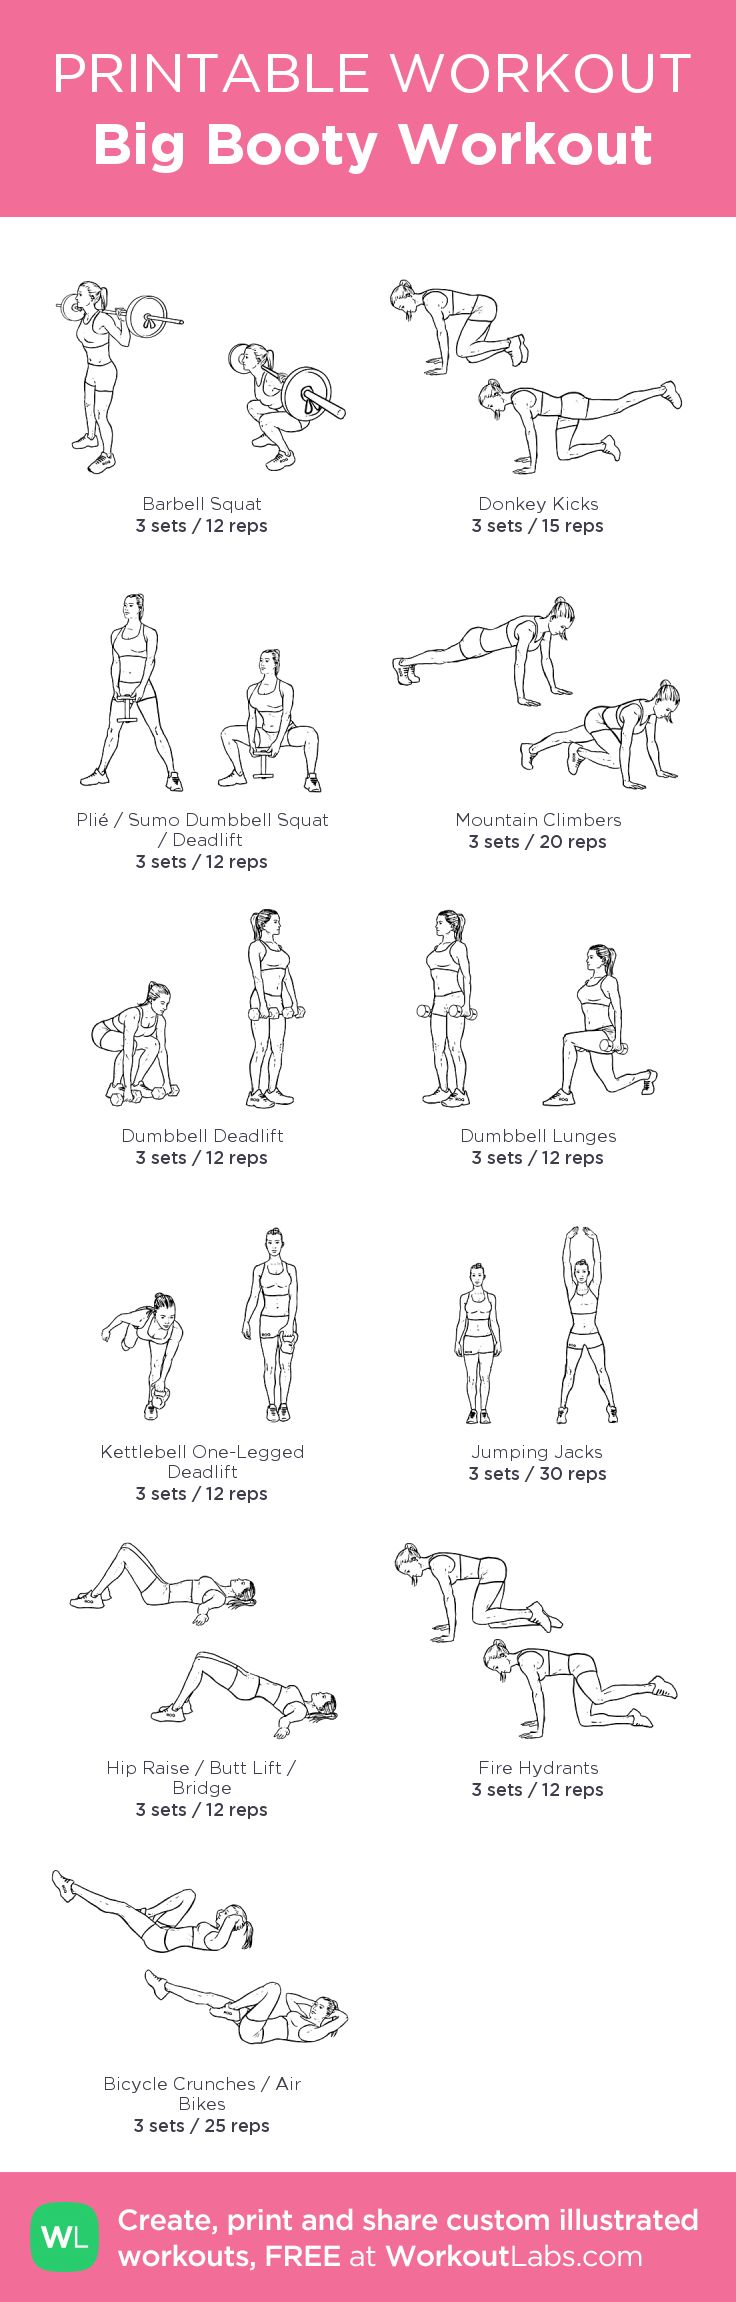 Big Booty Workout:\\u00a0my custom printable workout by @WorkoutLabs #workoutlabs #customworkout